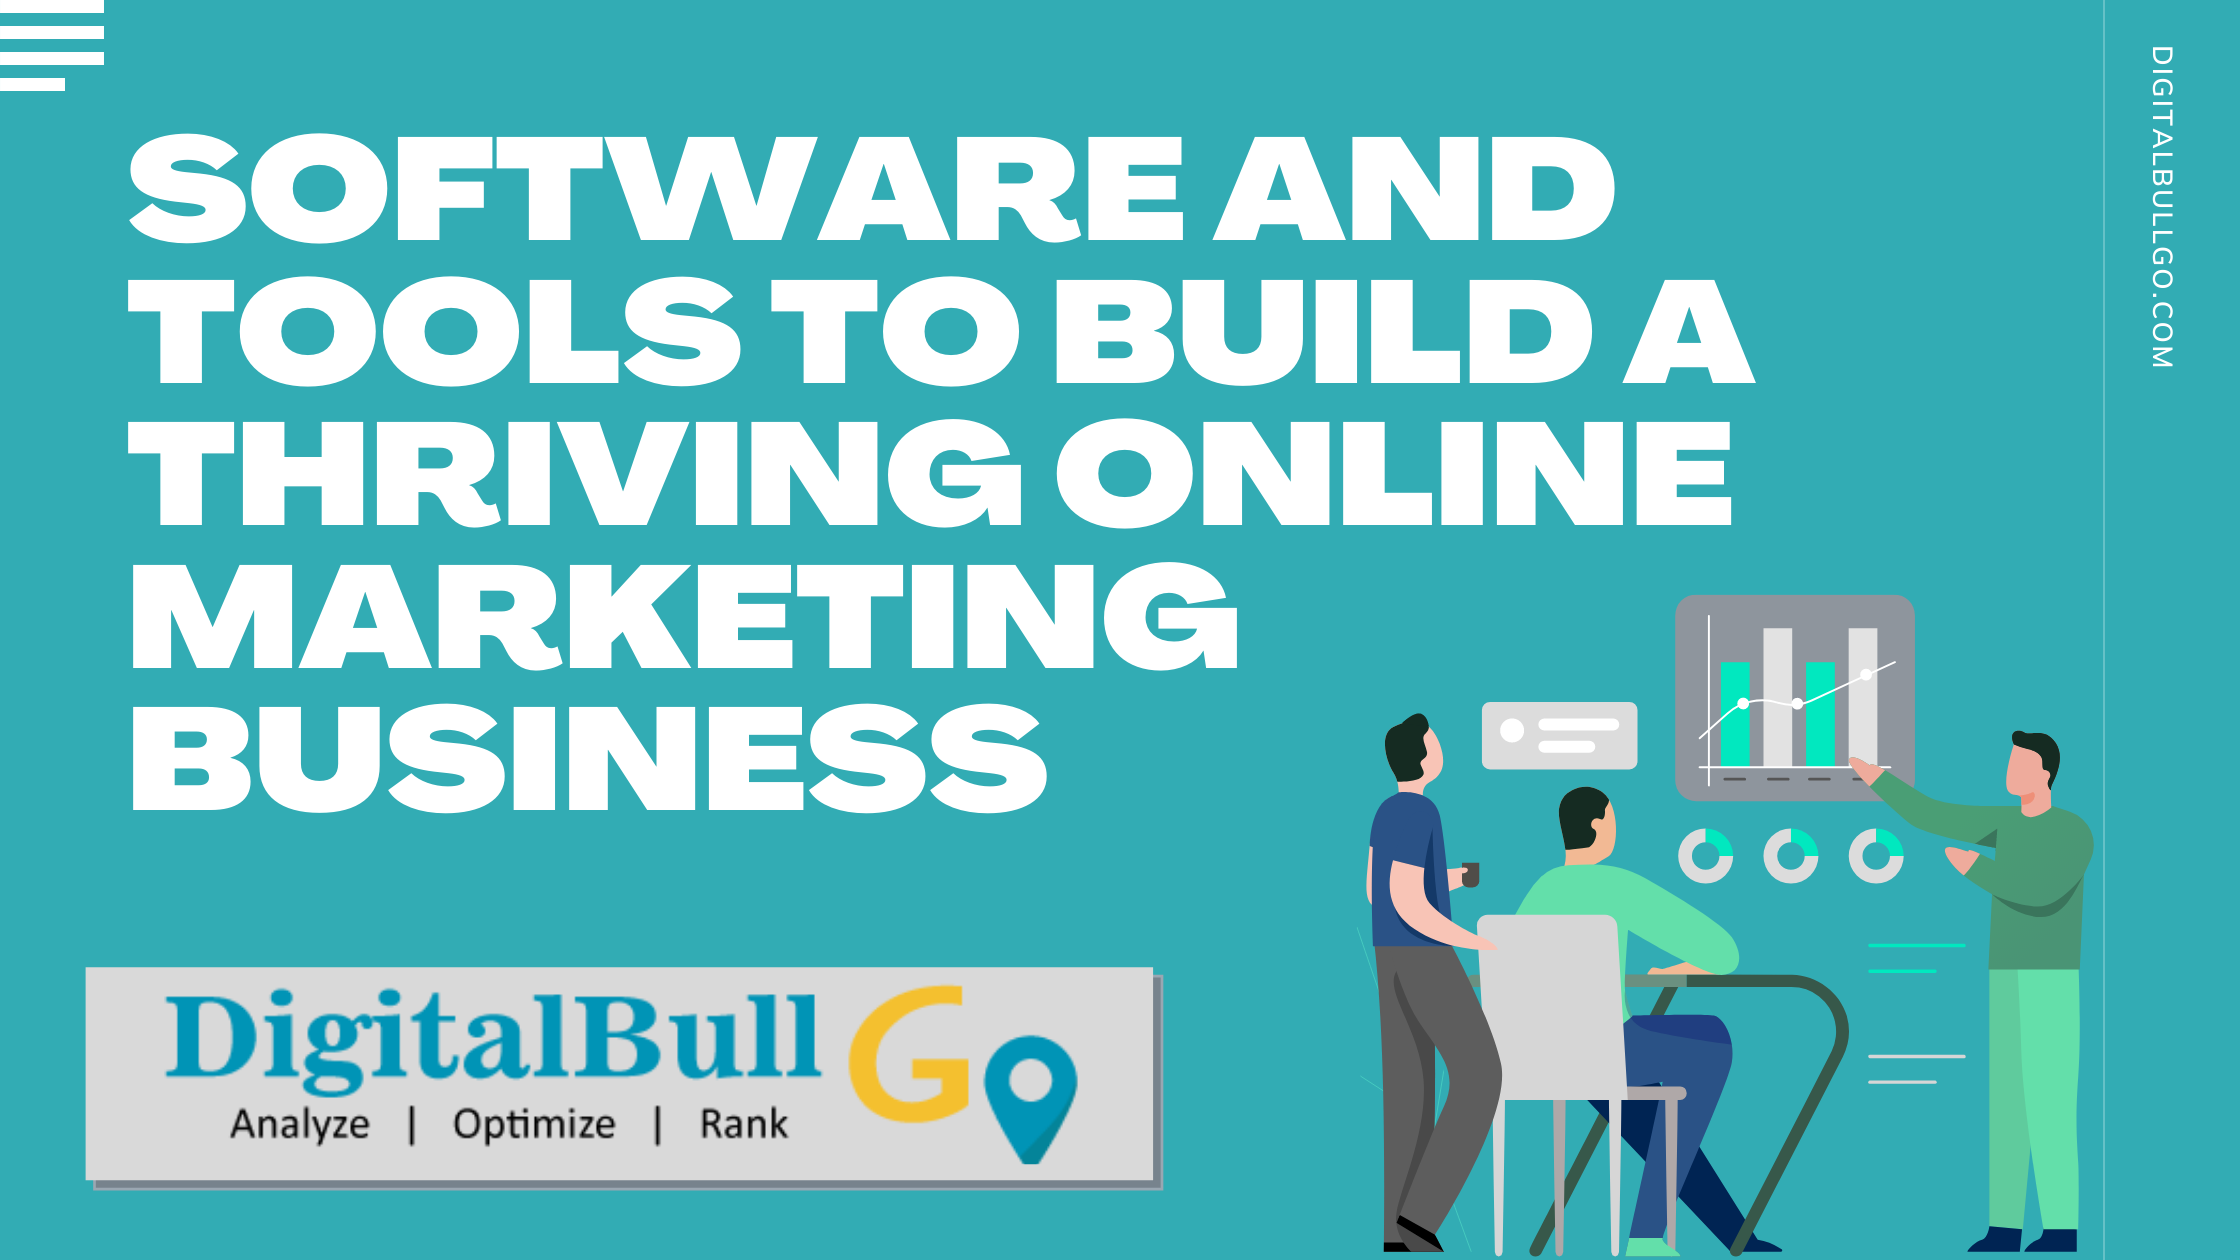 DigitalBull GO Software and Tools to Build a Thriving Online Marketing Business 11